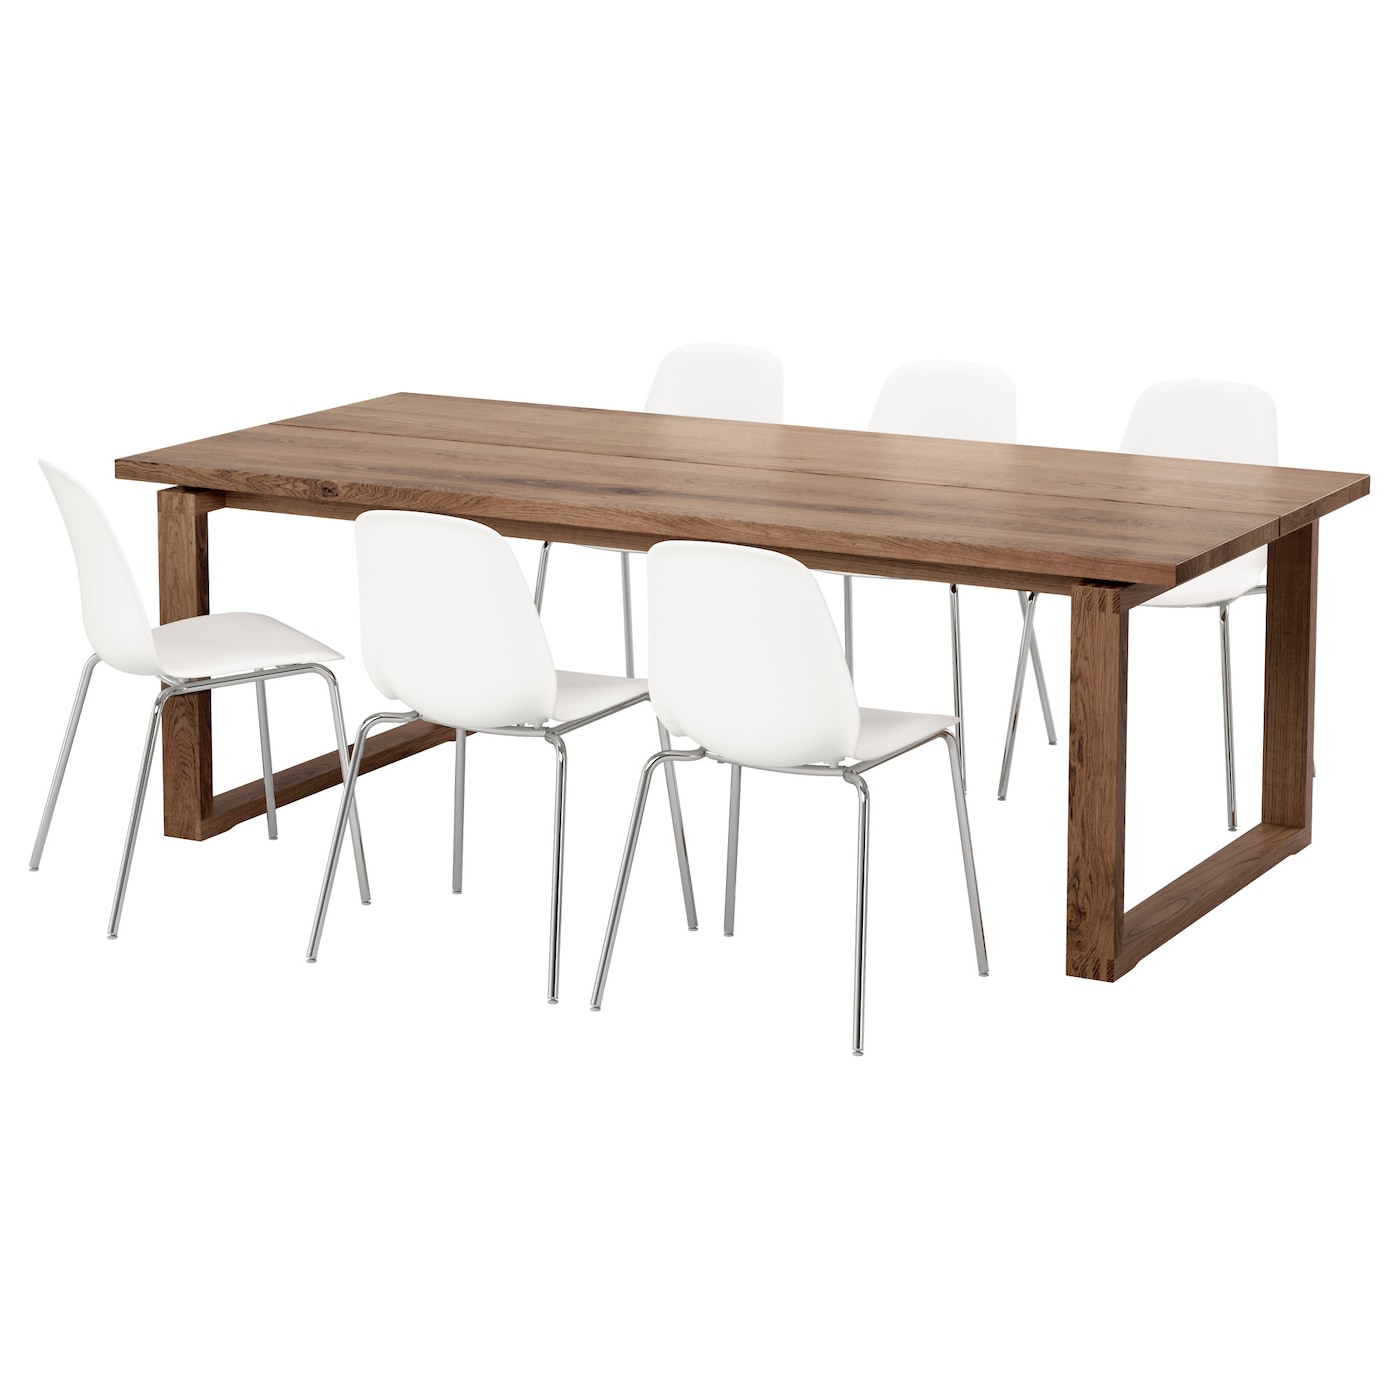 Leifarne m rbyl nga table and 6 chairs brown white 220x100 for White dining table and 6 chairs